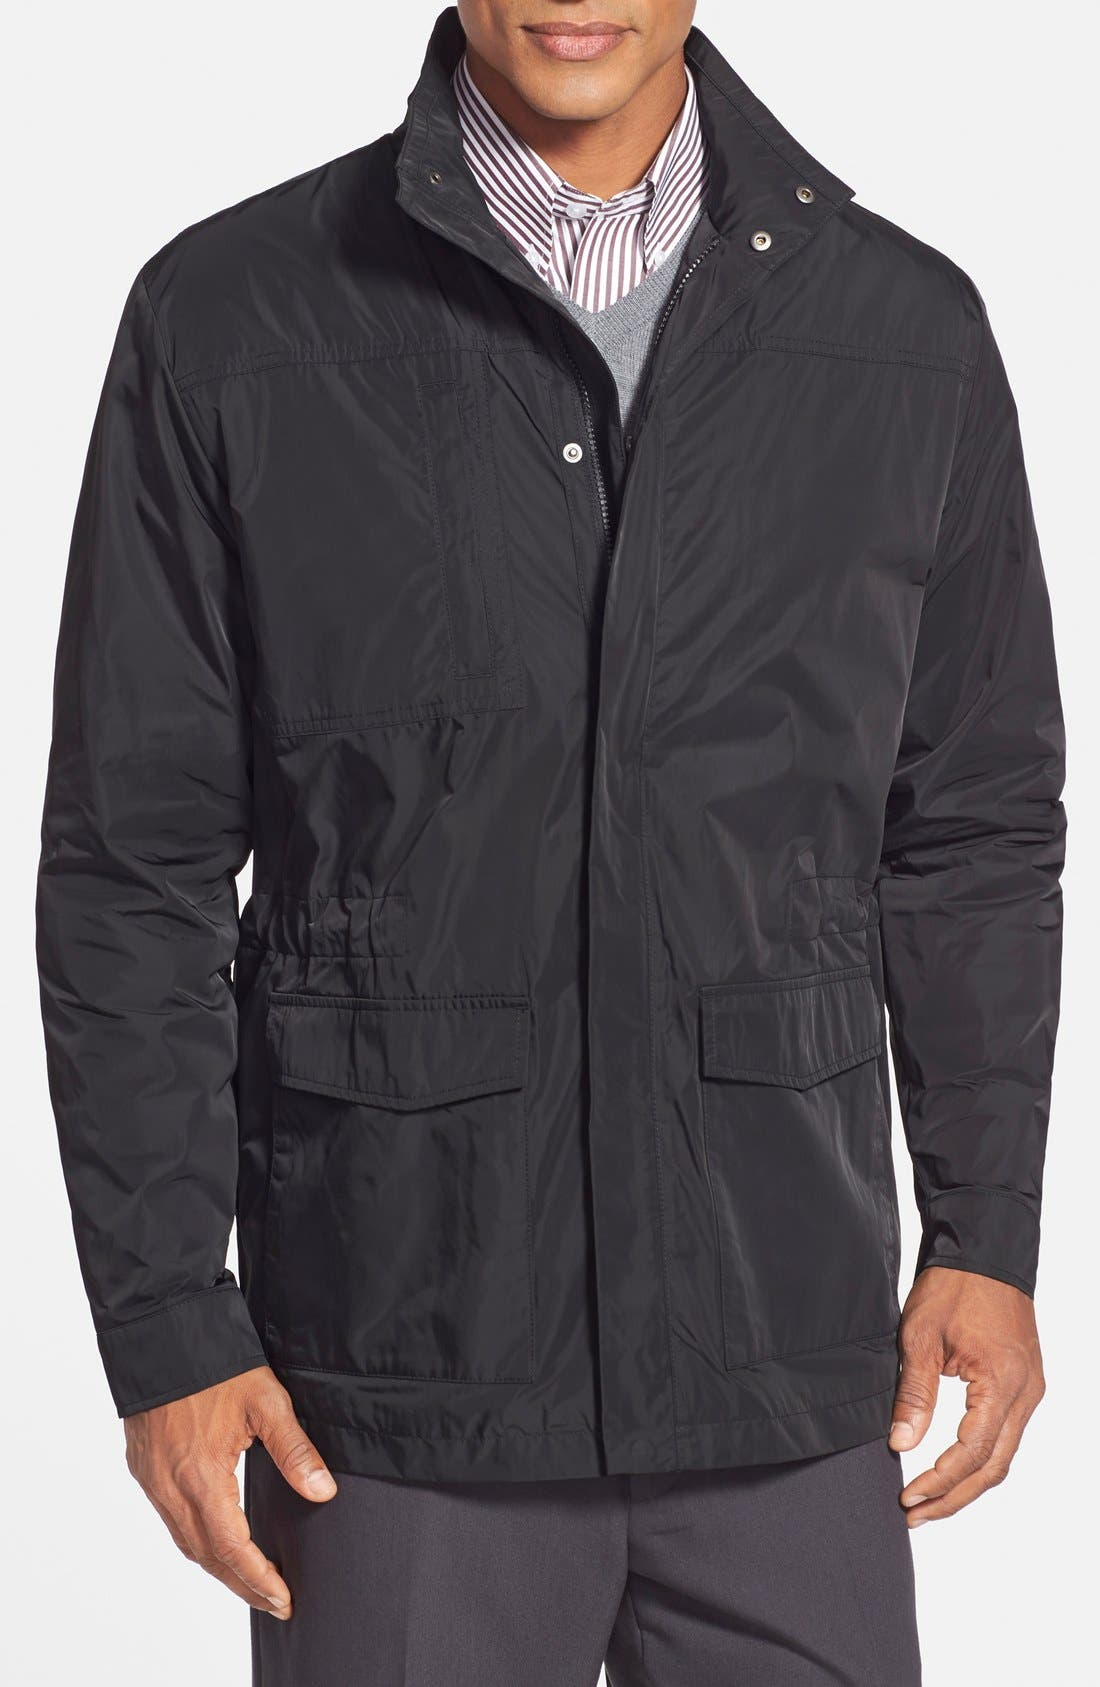 Alternate Image 1 Selected - Cutter & Buck Birch Bay Water Resistant Jacket (Online Only)